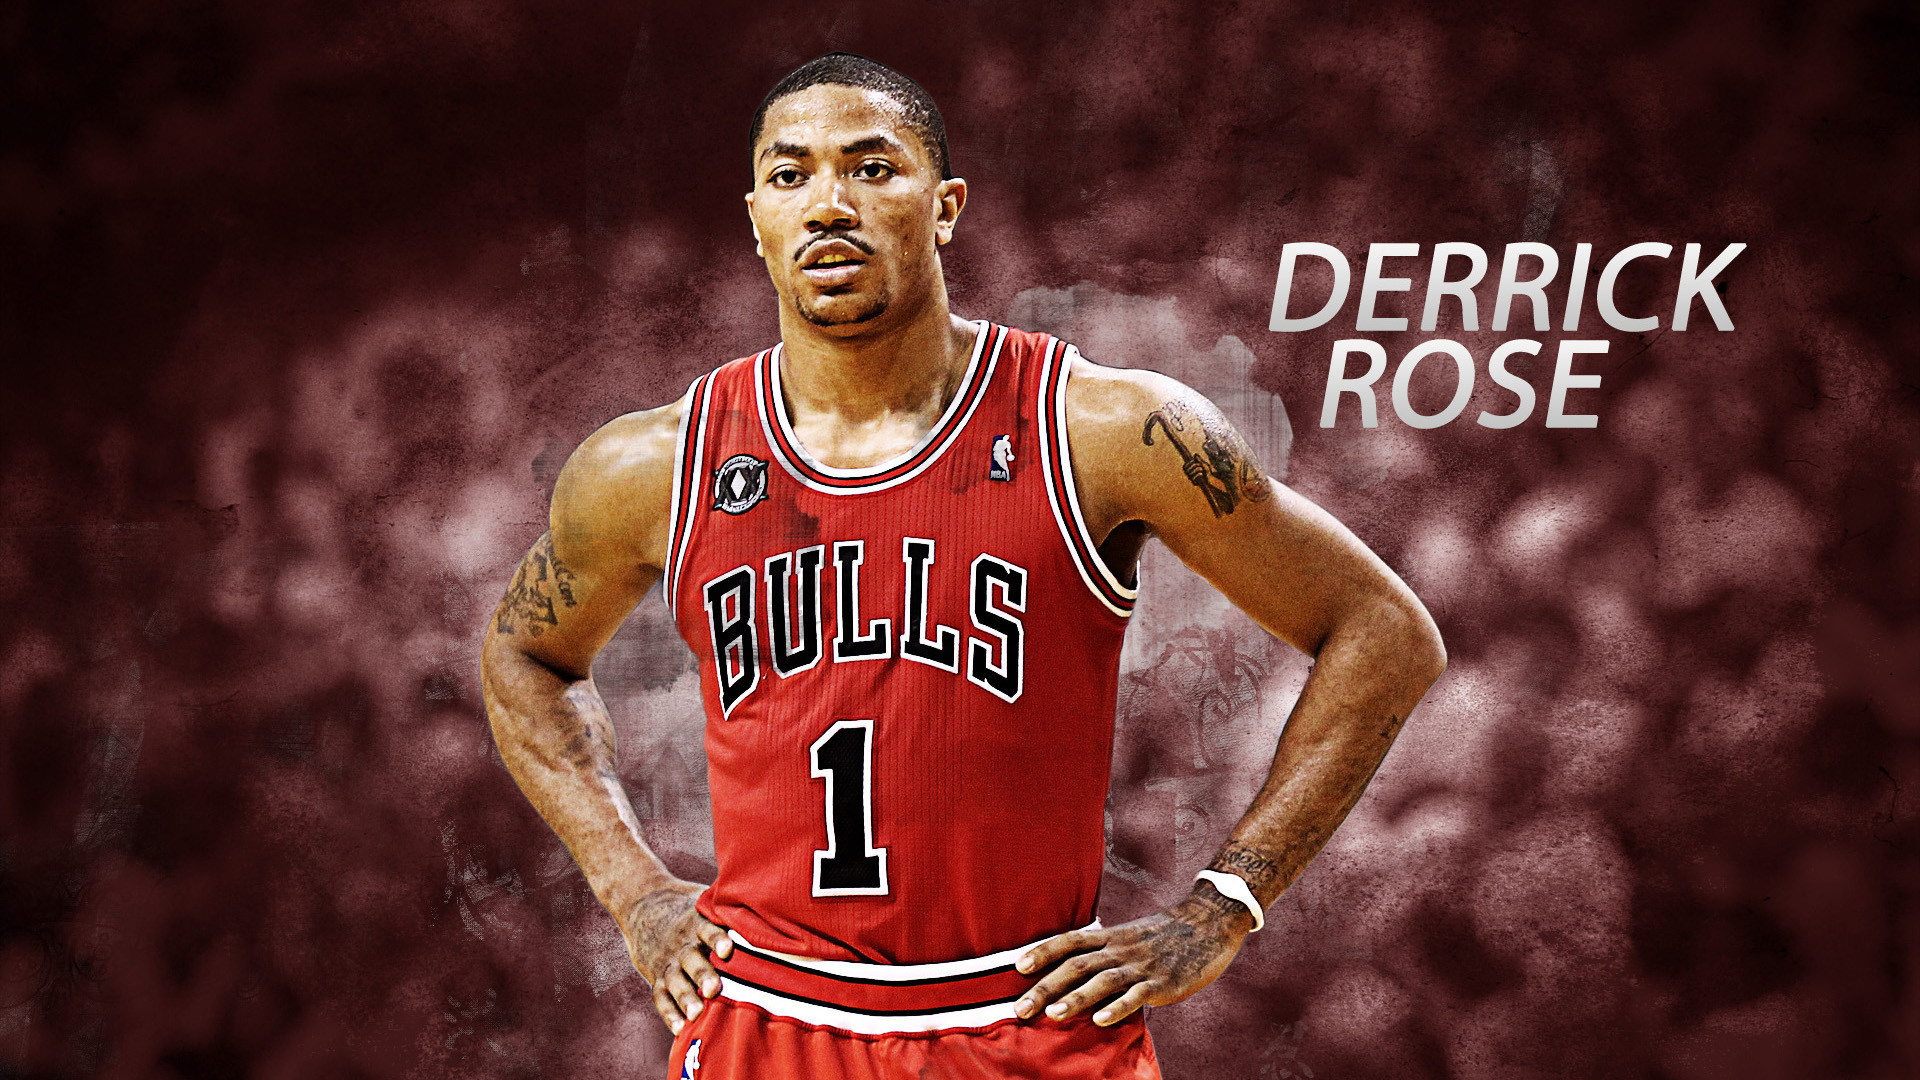 1920x1080  Derrick Rose Wallpapers HD 2017 - Wallpaper Cave